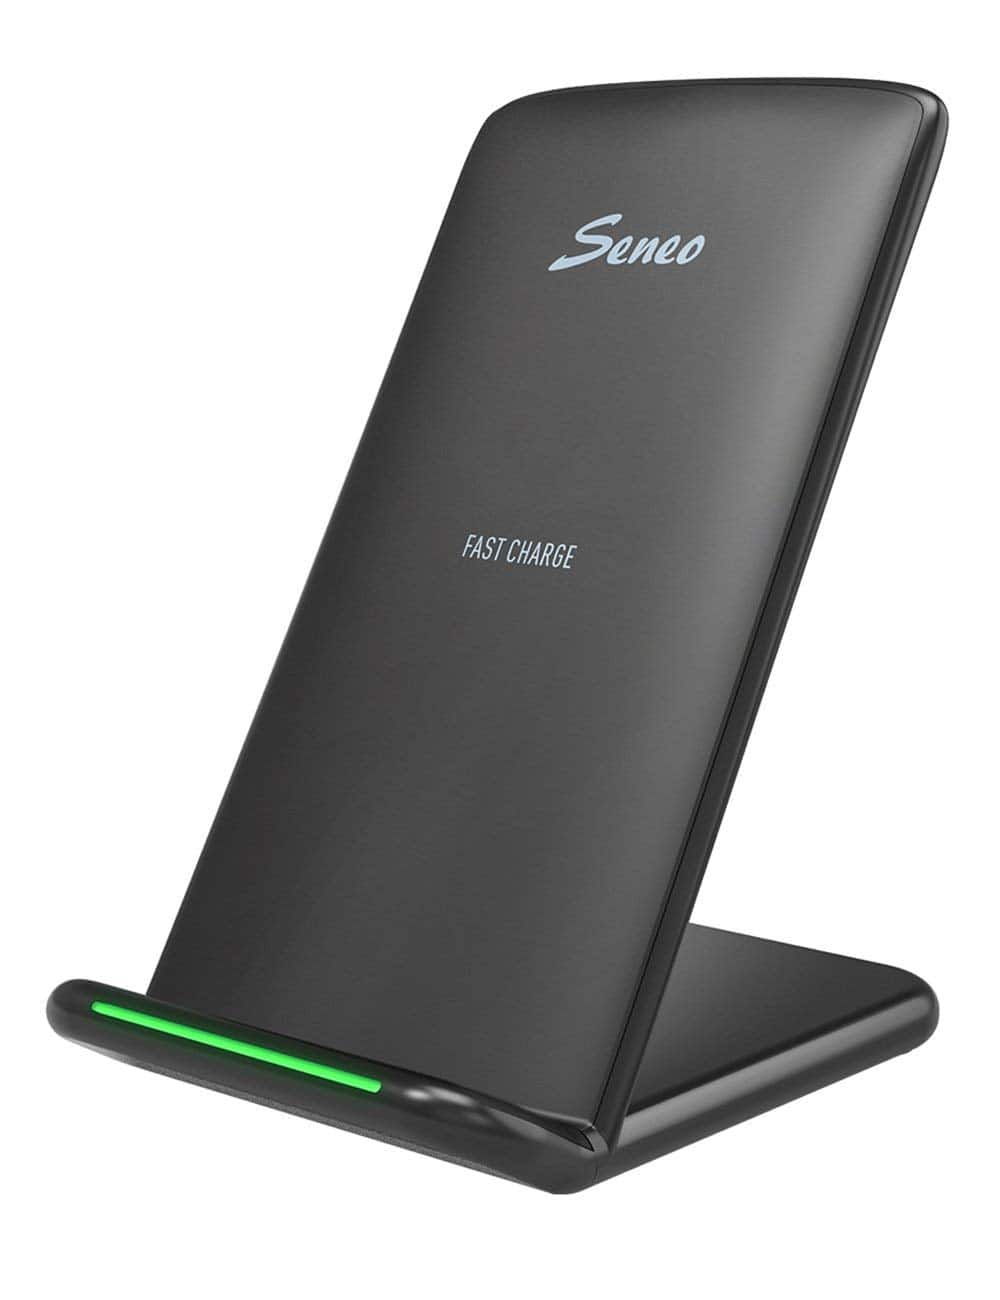 Amazon Prime Day Lighting Deal  Seneo 10W Fast Wireless Charger Stand  $14.99+Free Shipping